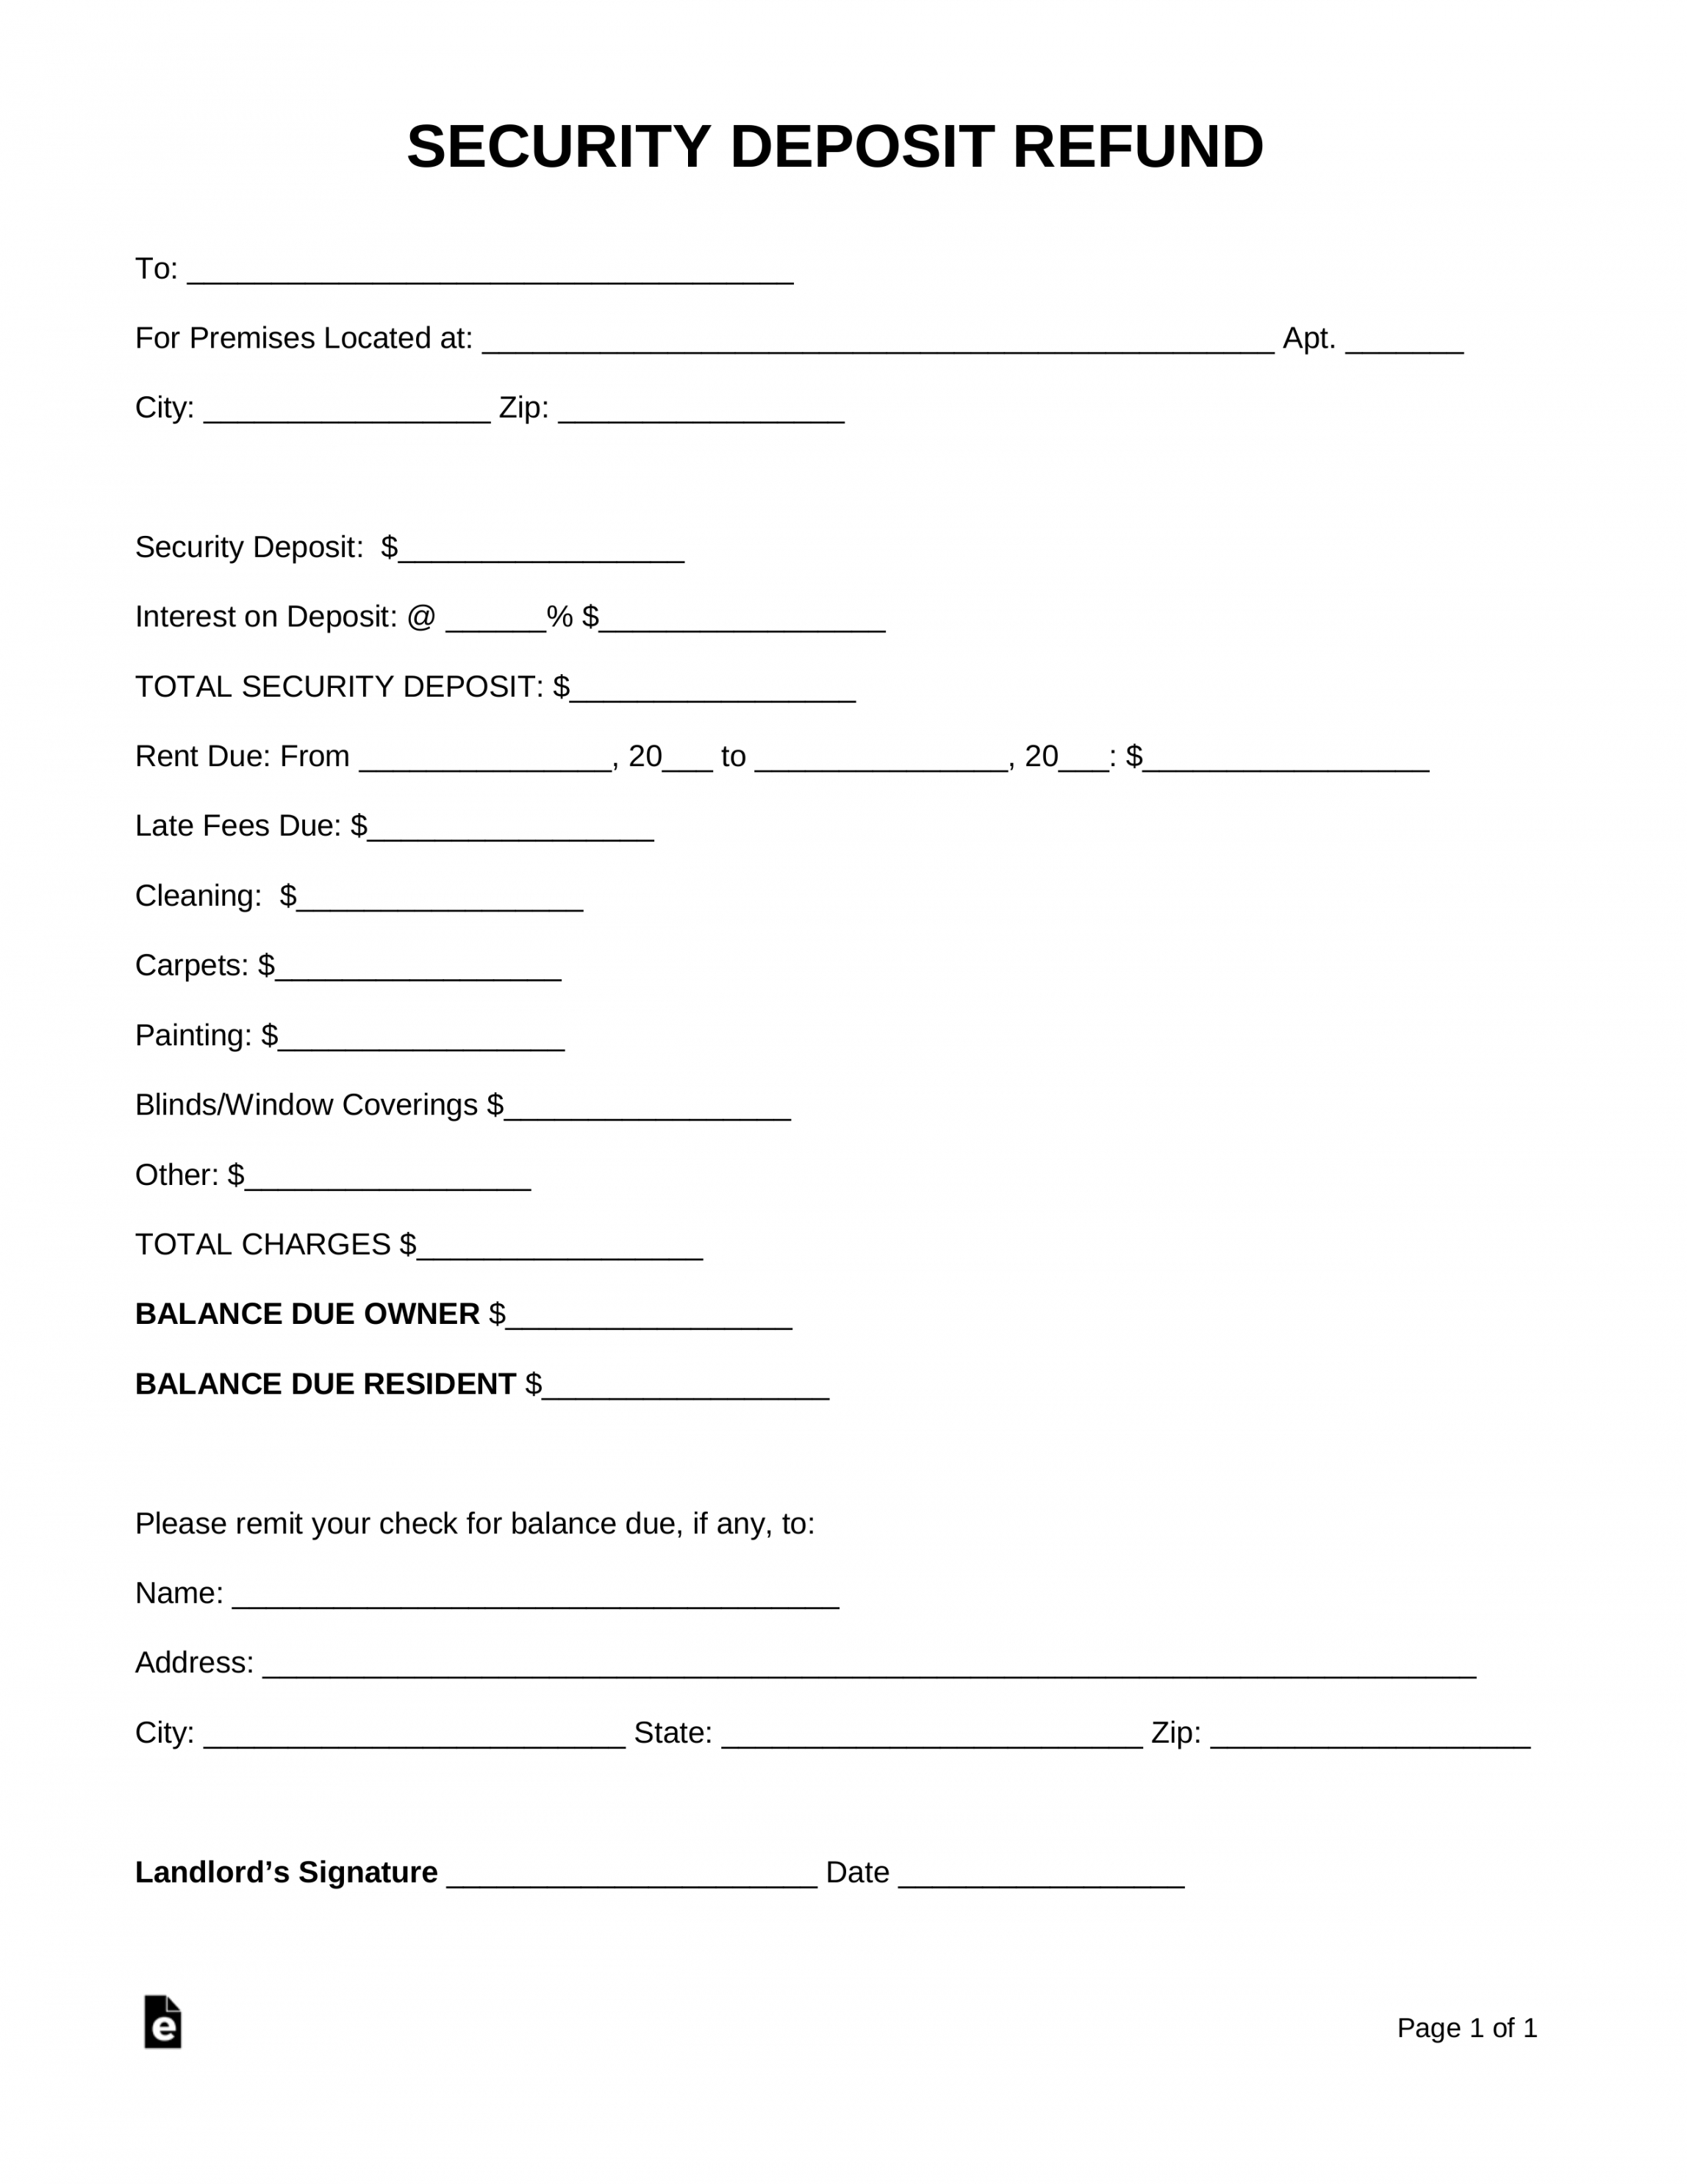 printable free security deposit return letter  pdf  word  eforms rental security deposit refund form word